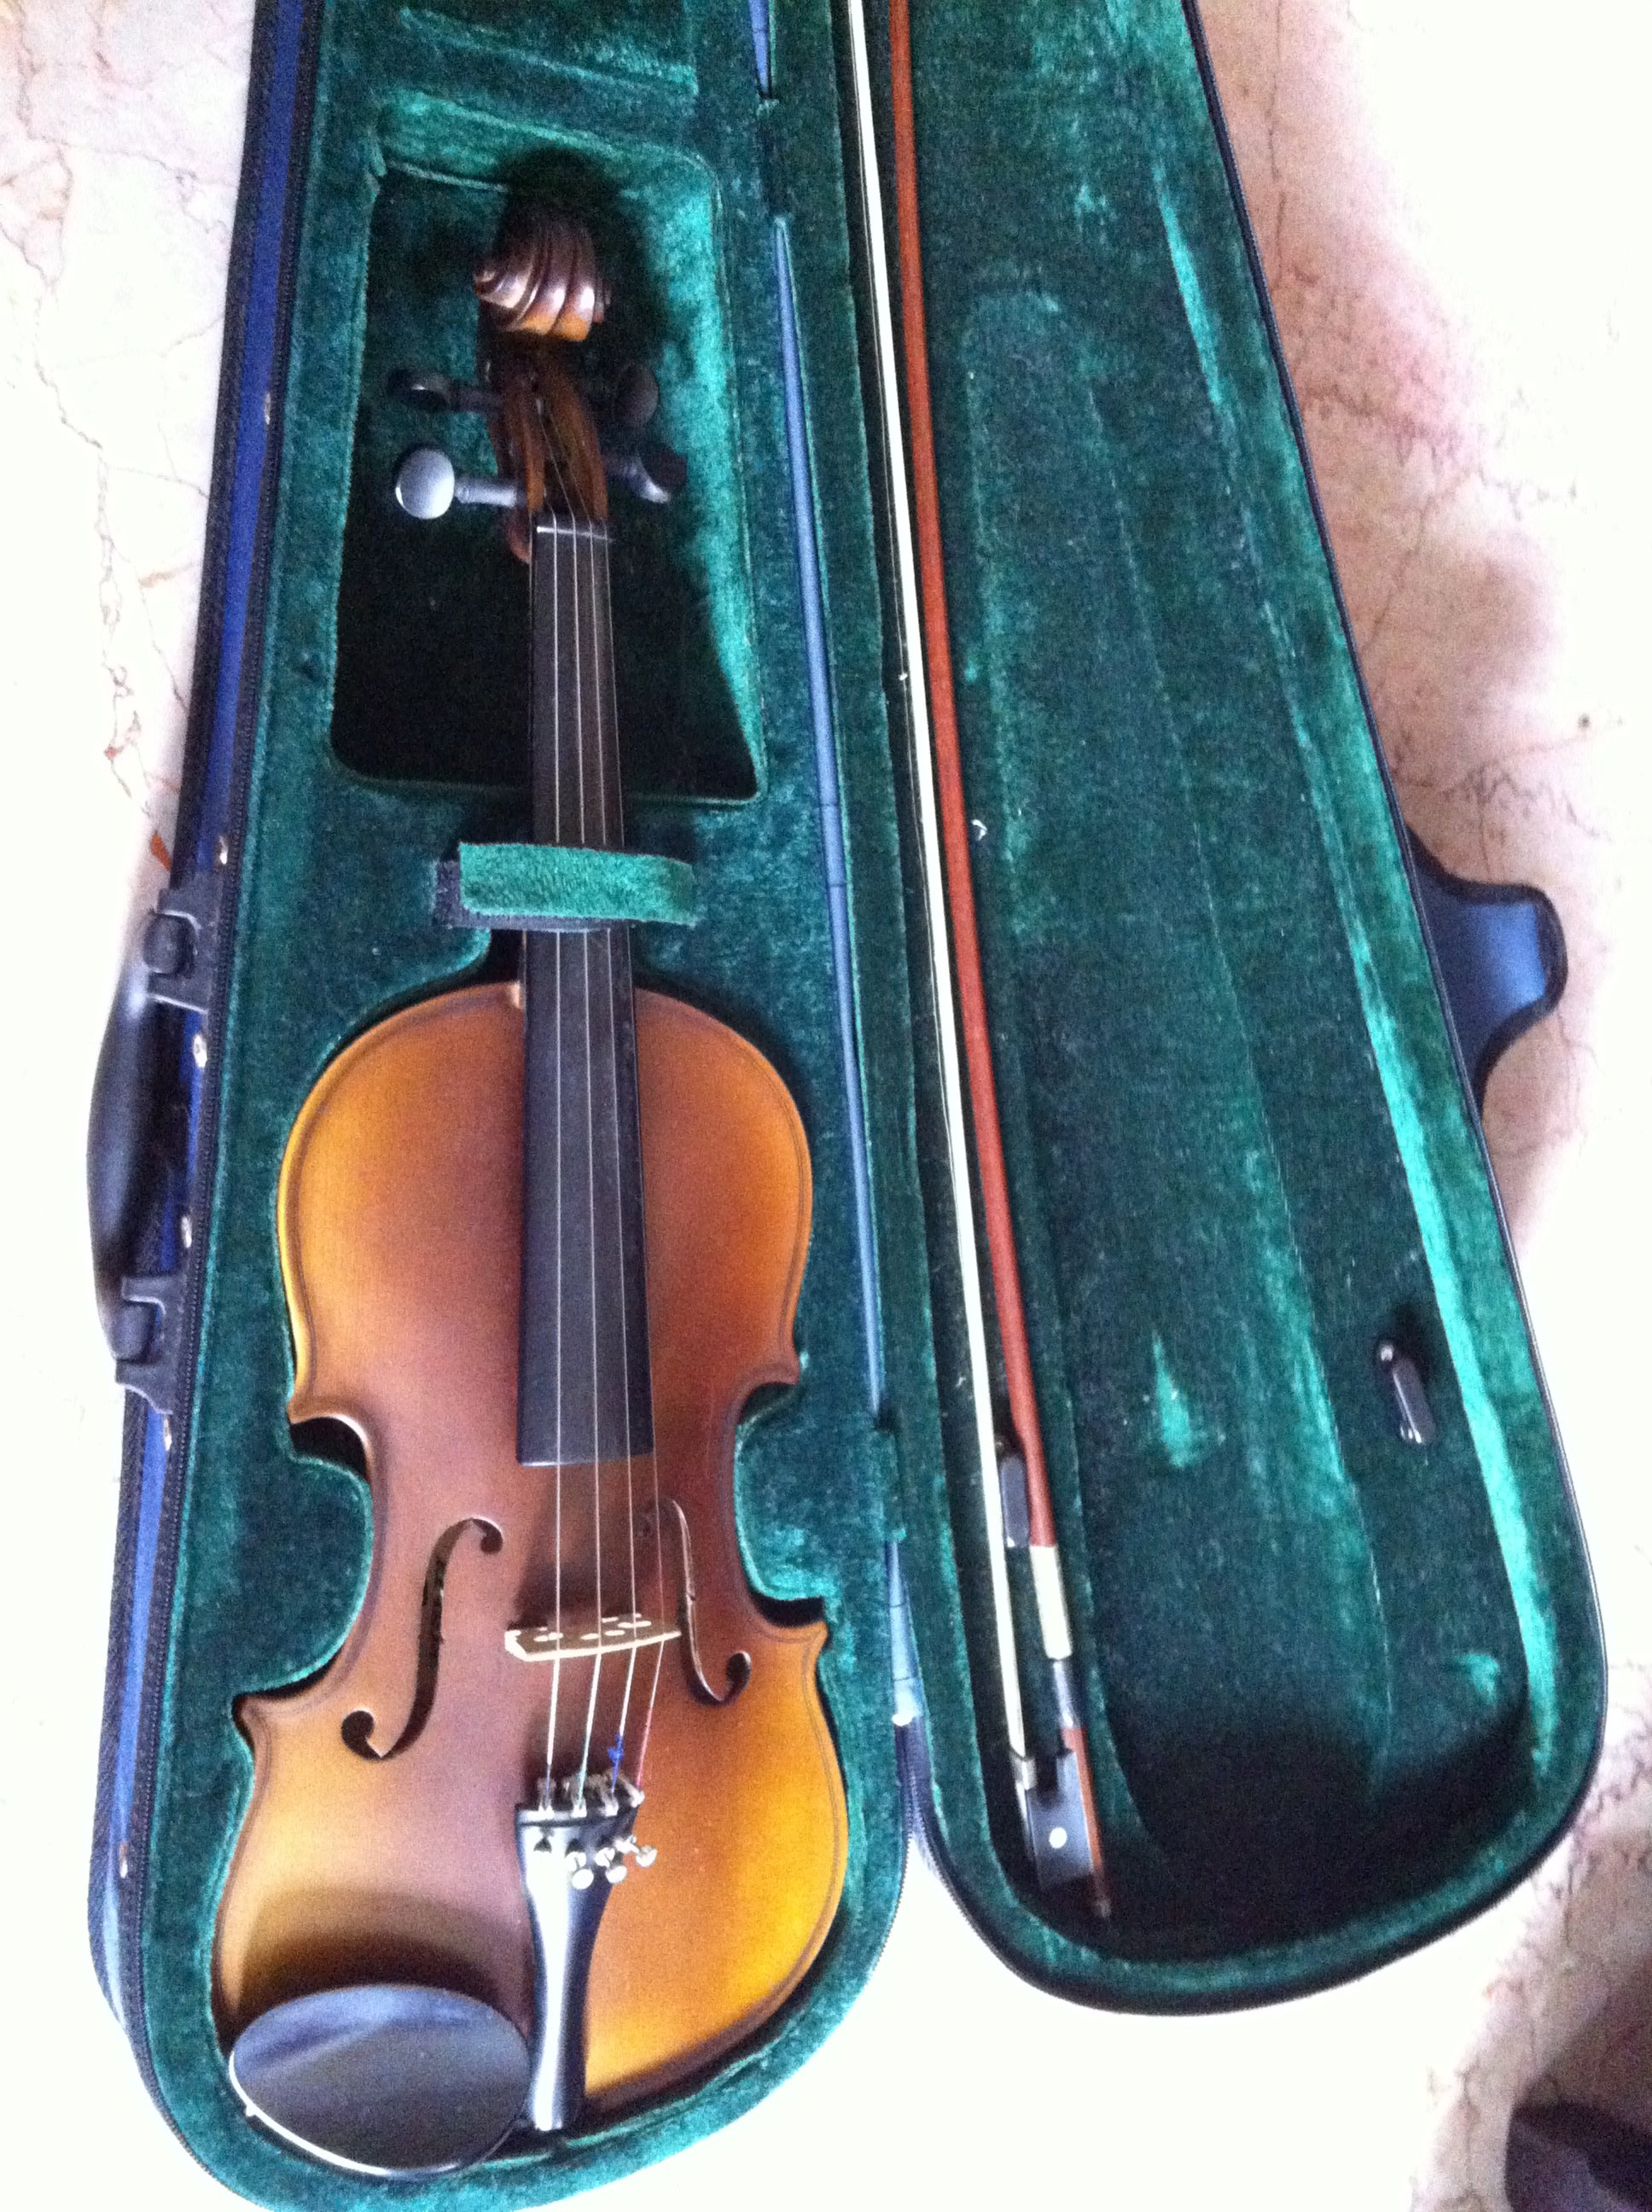 FOR SALE: Violin for sale